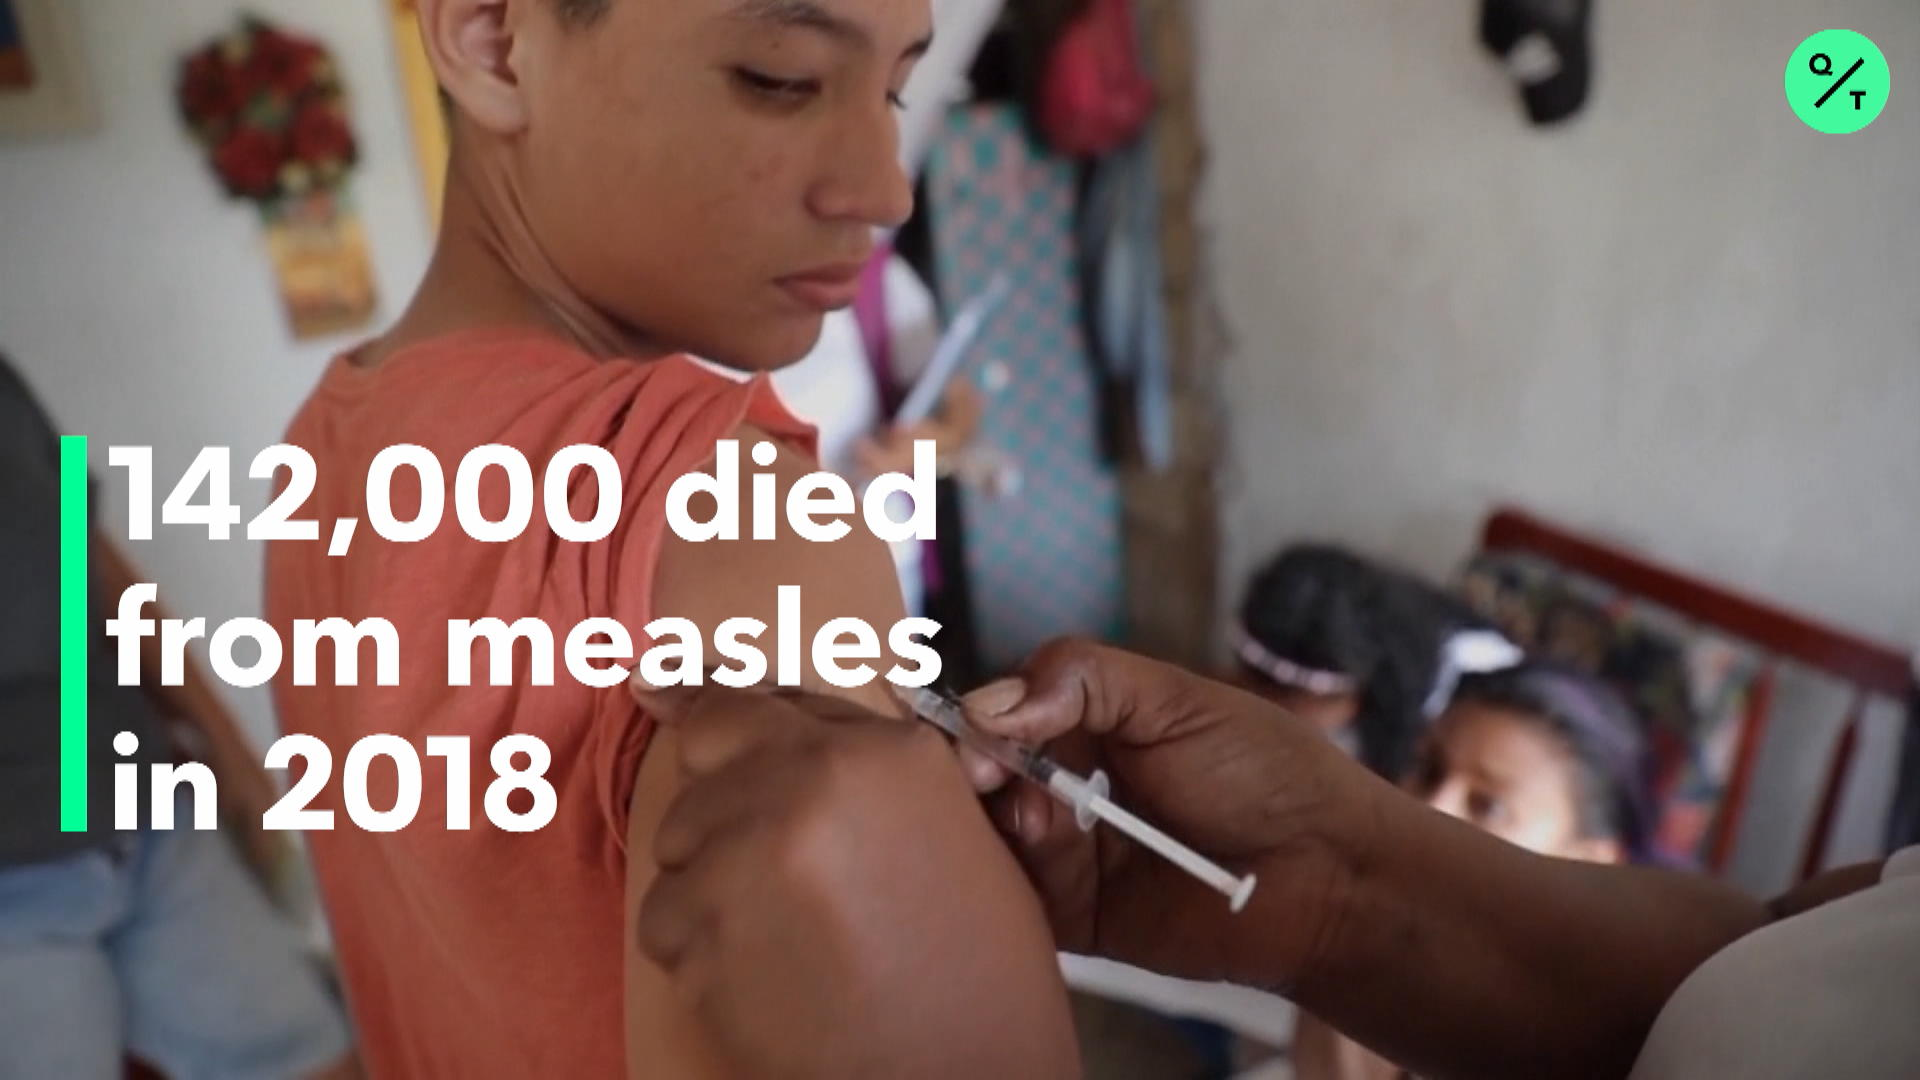 142,000 Died From Measles In 2018